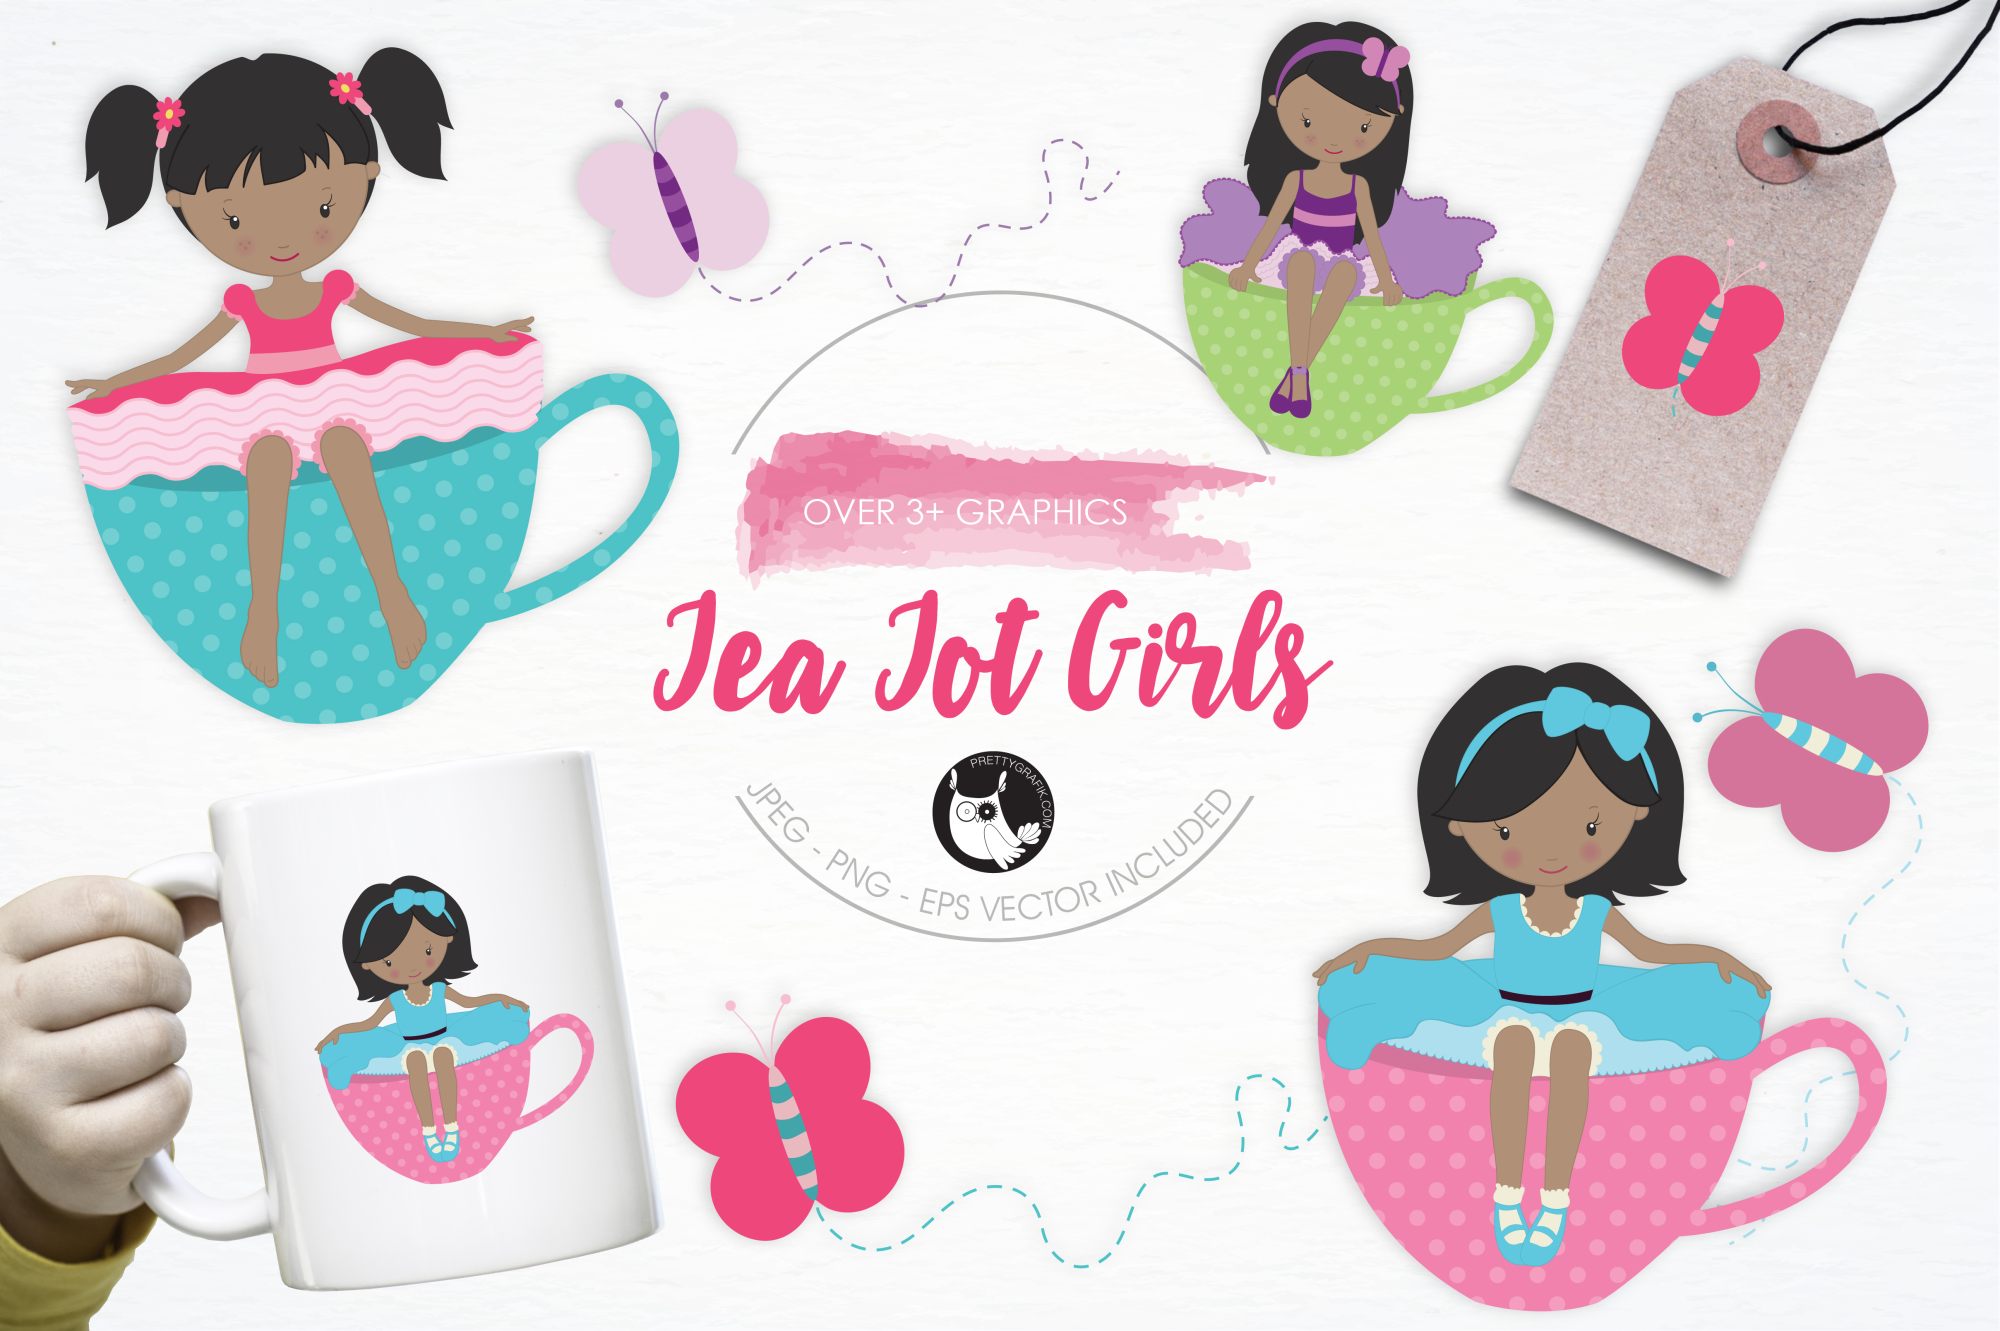 Tea Tot Girls graphics and illustrations example image 1